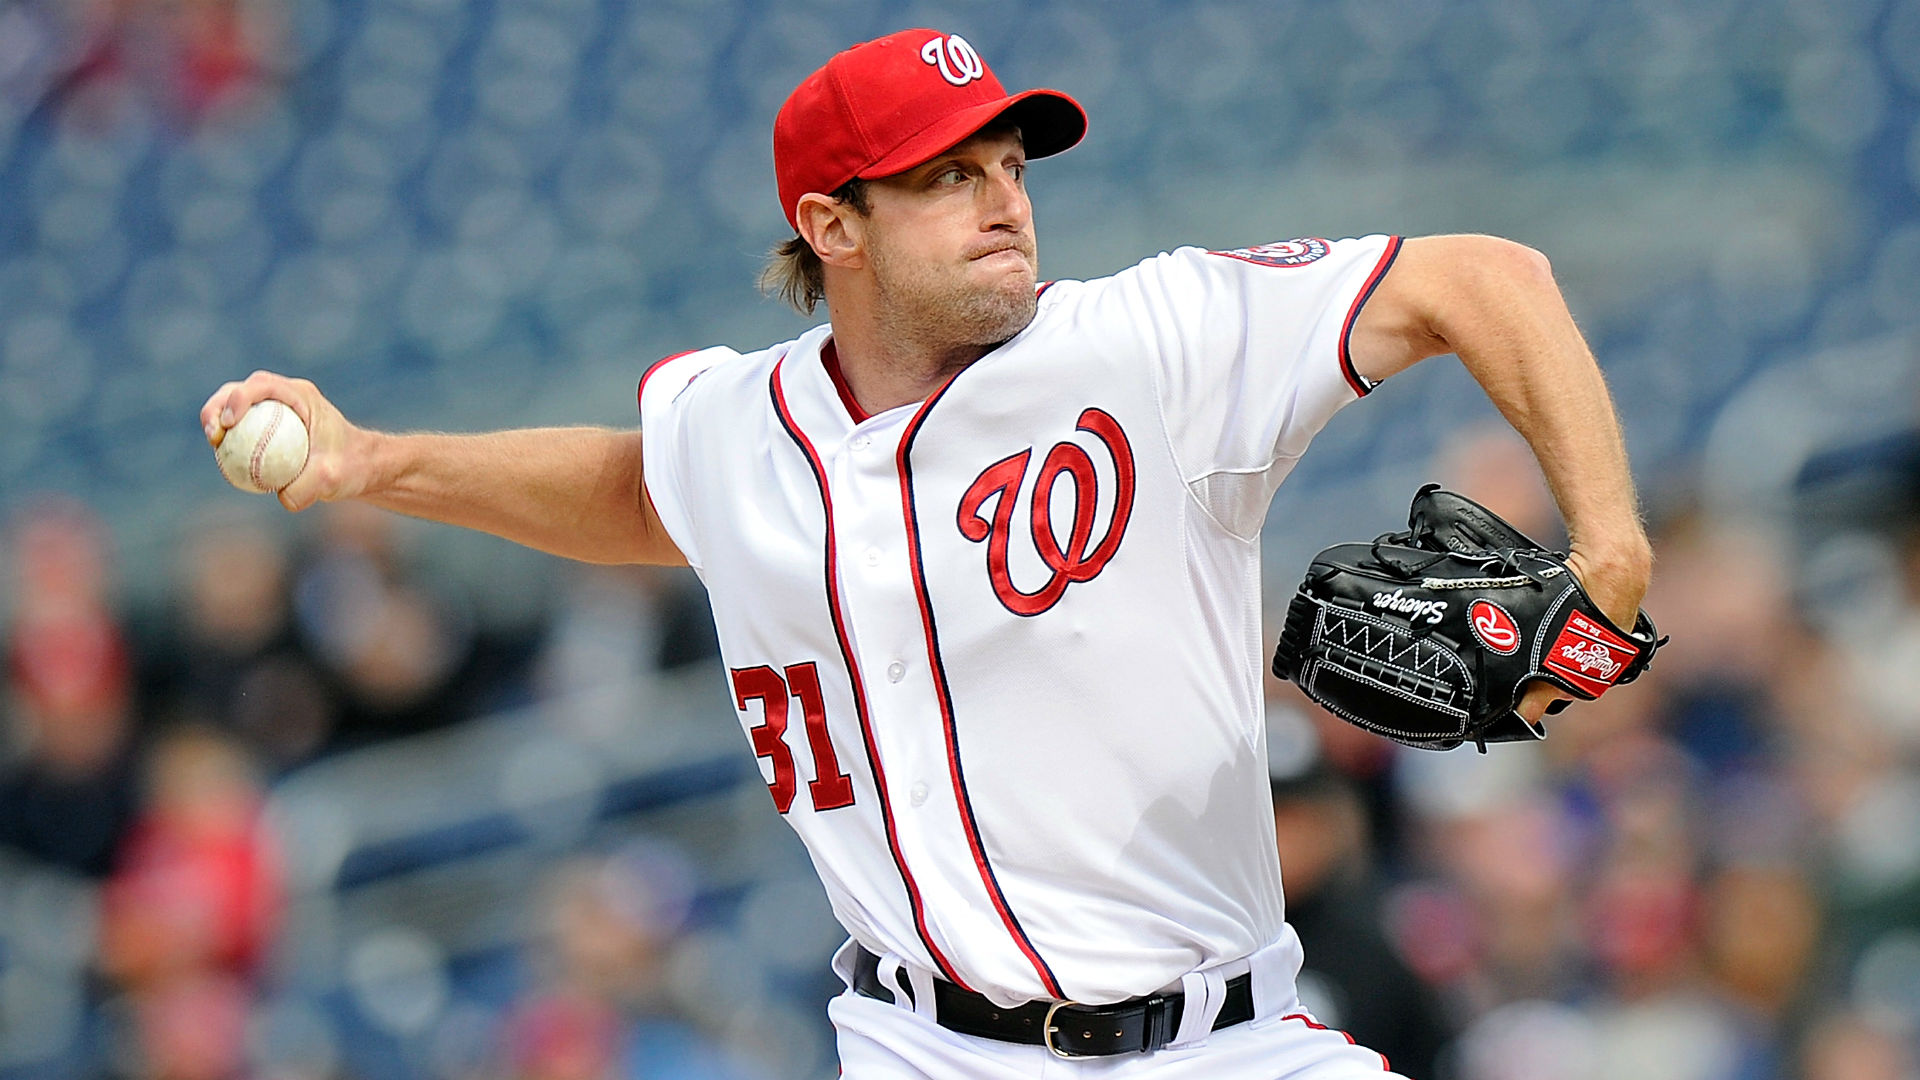 Max Scherzer backtracks on DH comments, says he's a 'fun and